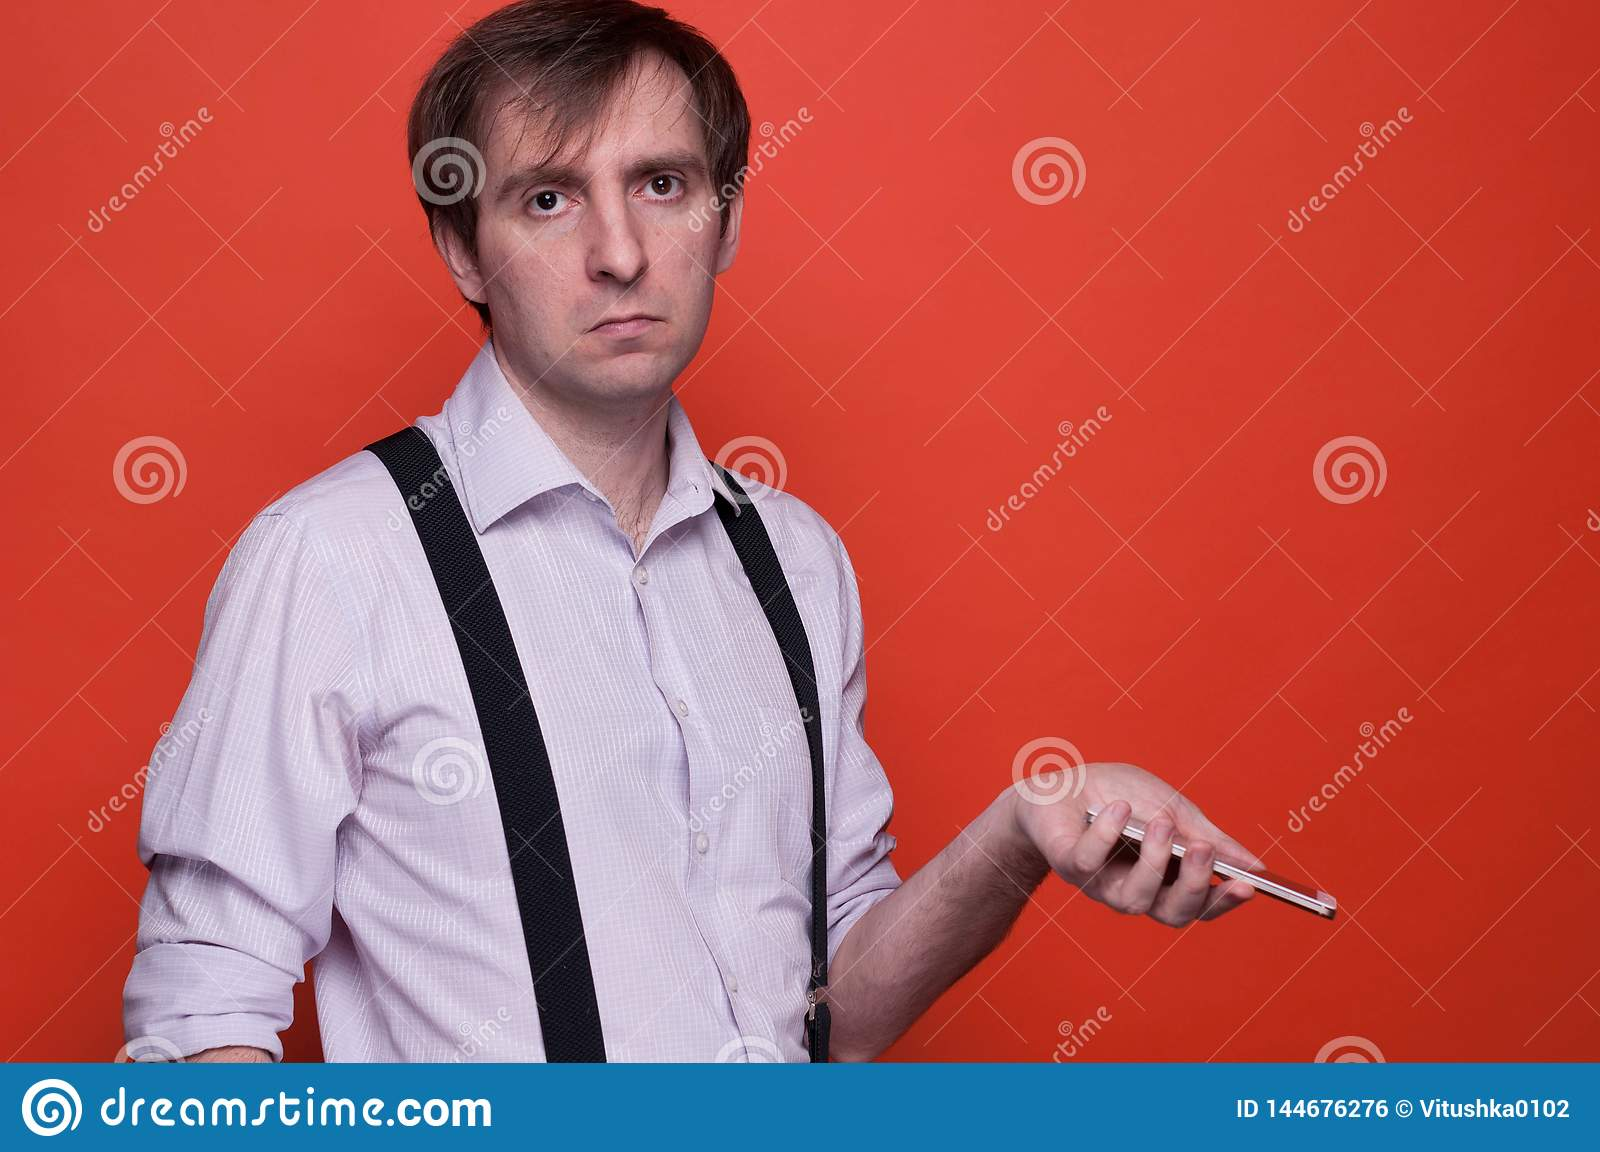 Disappointed handsome man holding smartphone on orange background